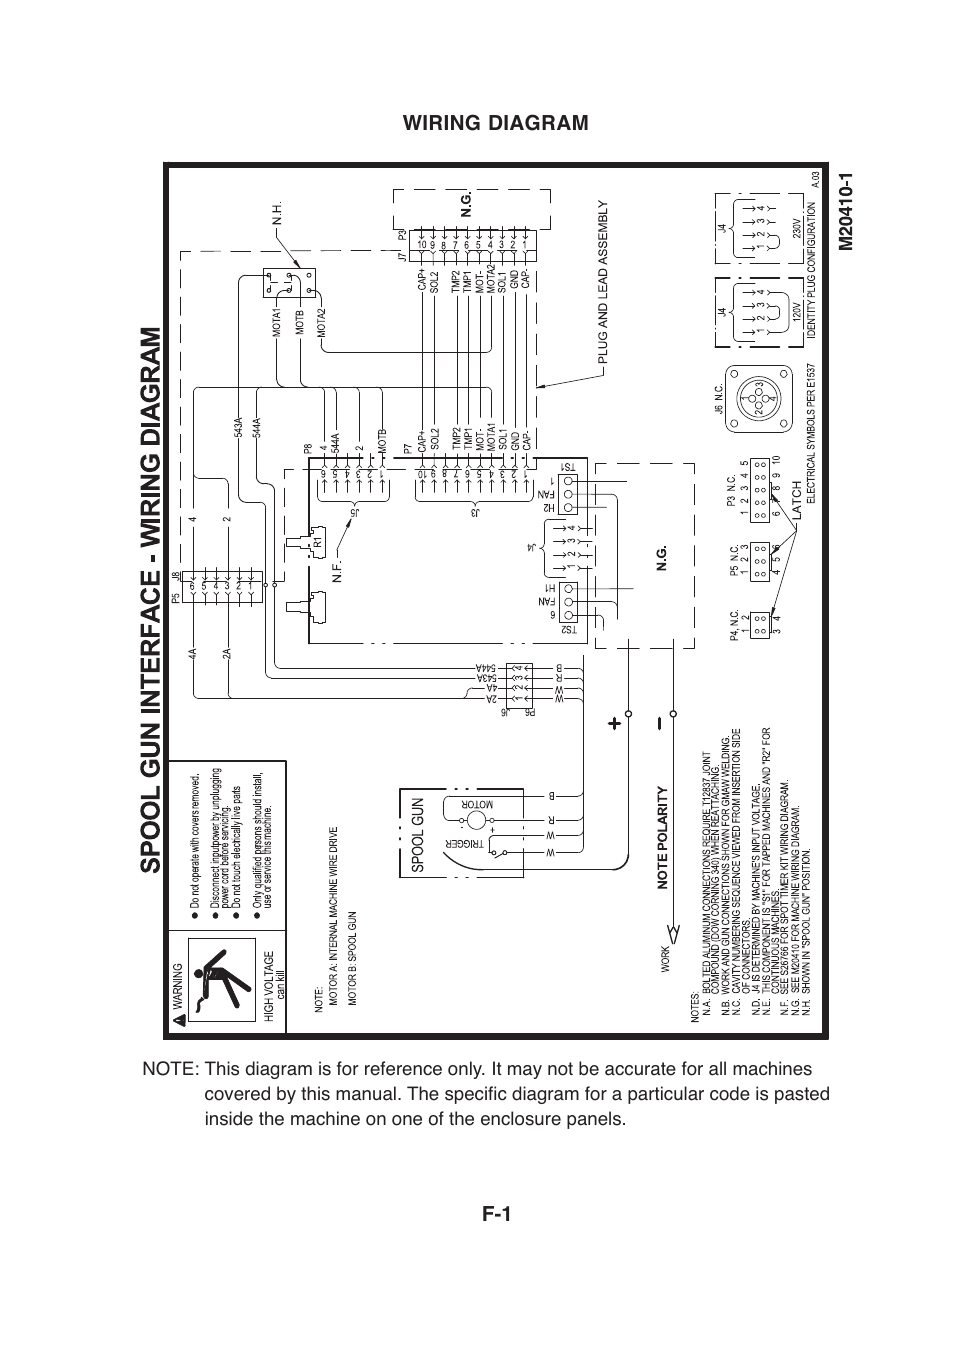 medium resolution of wiring diagram f 1 lincoln electric imt913 magnum 100sg spool gun user manual page 35 118